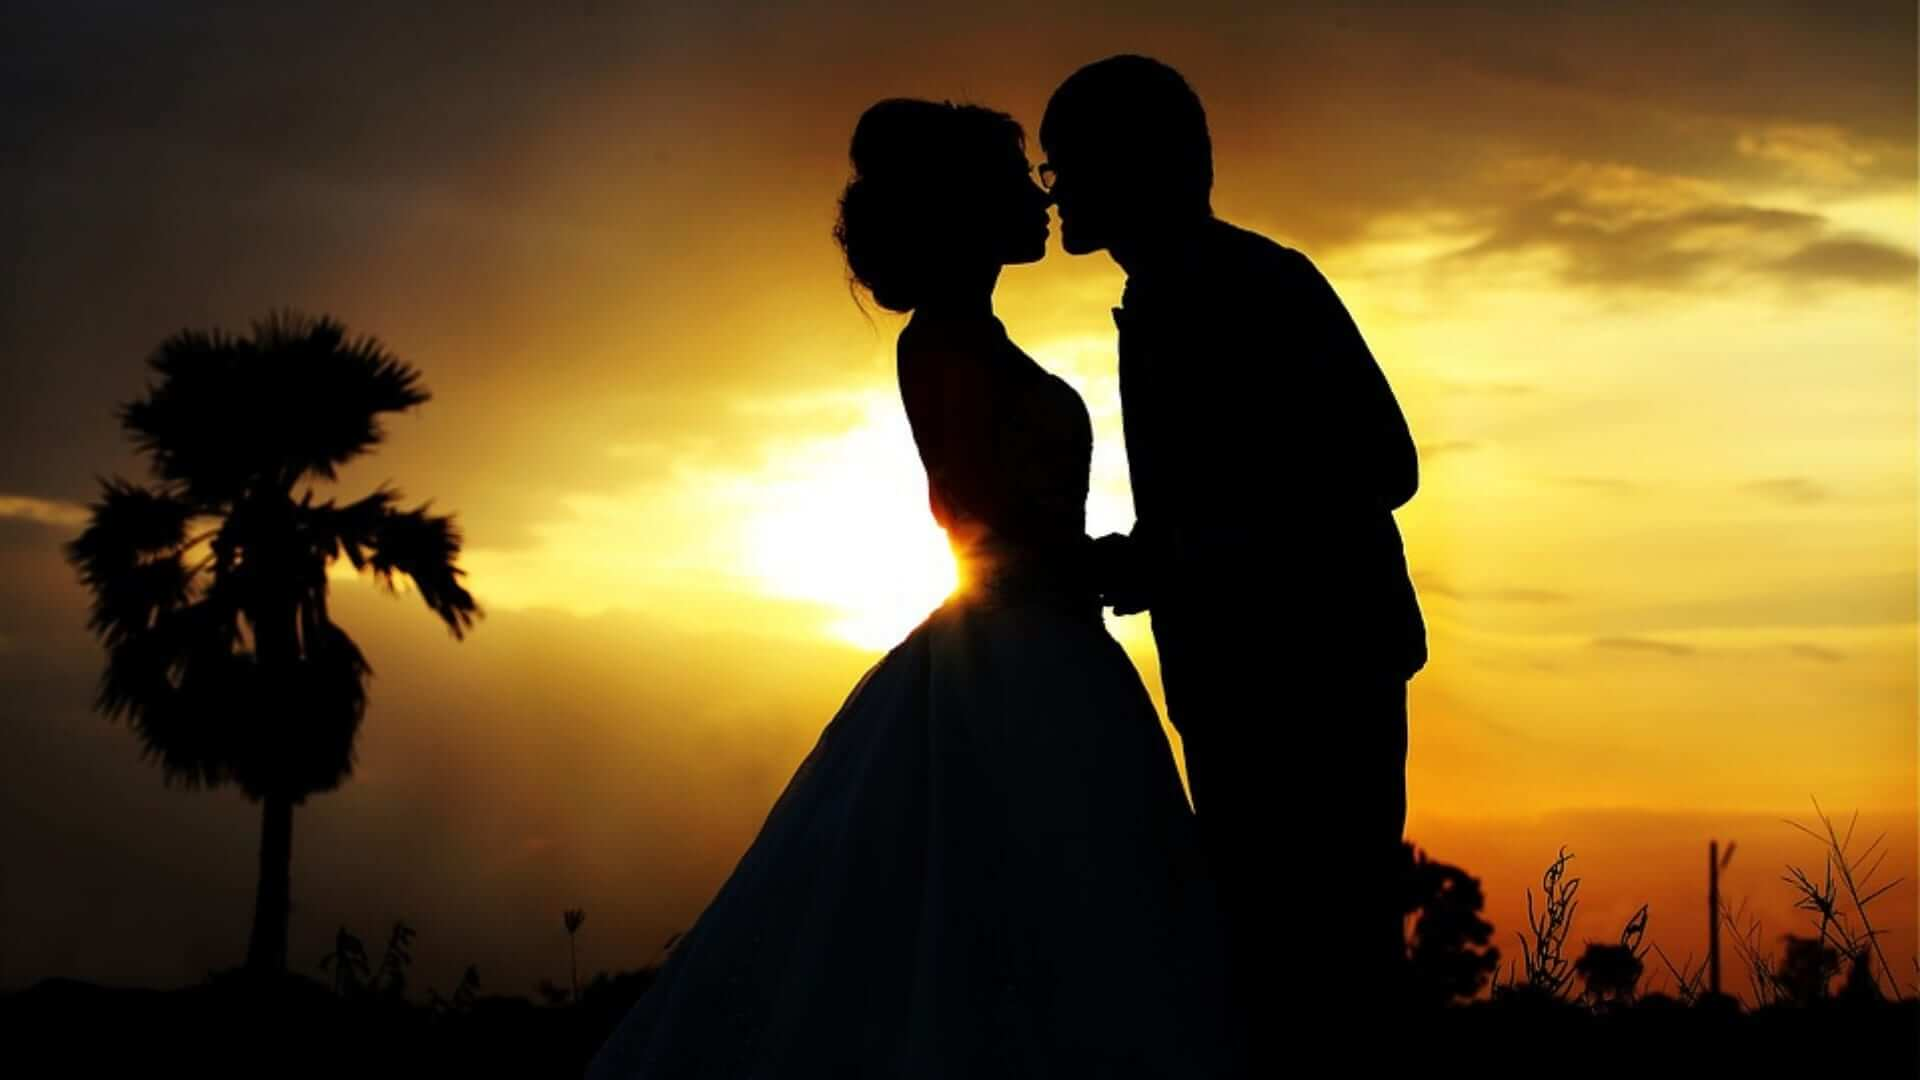 A silhoutte of two people kissing during sunset in Thailand.